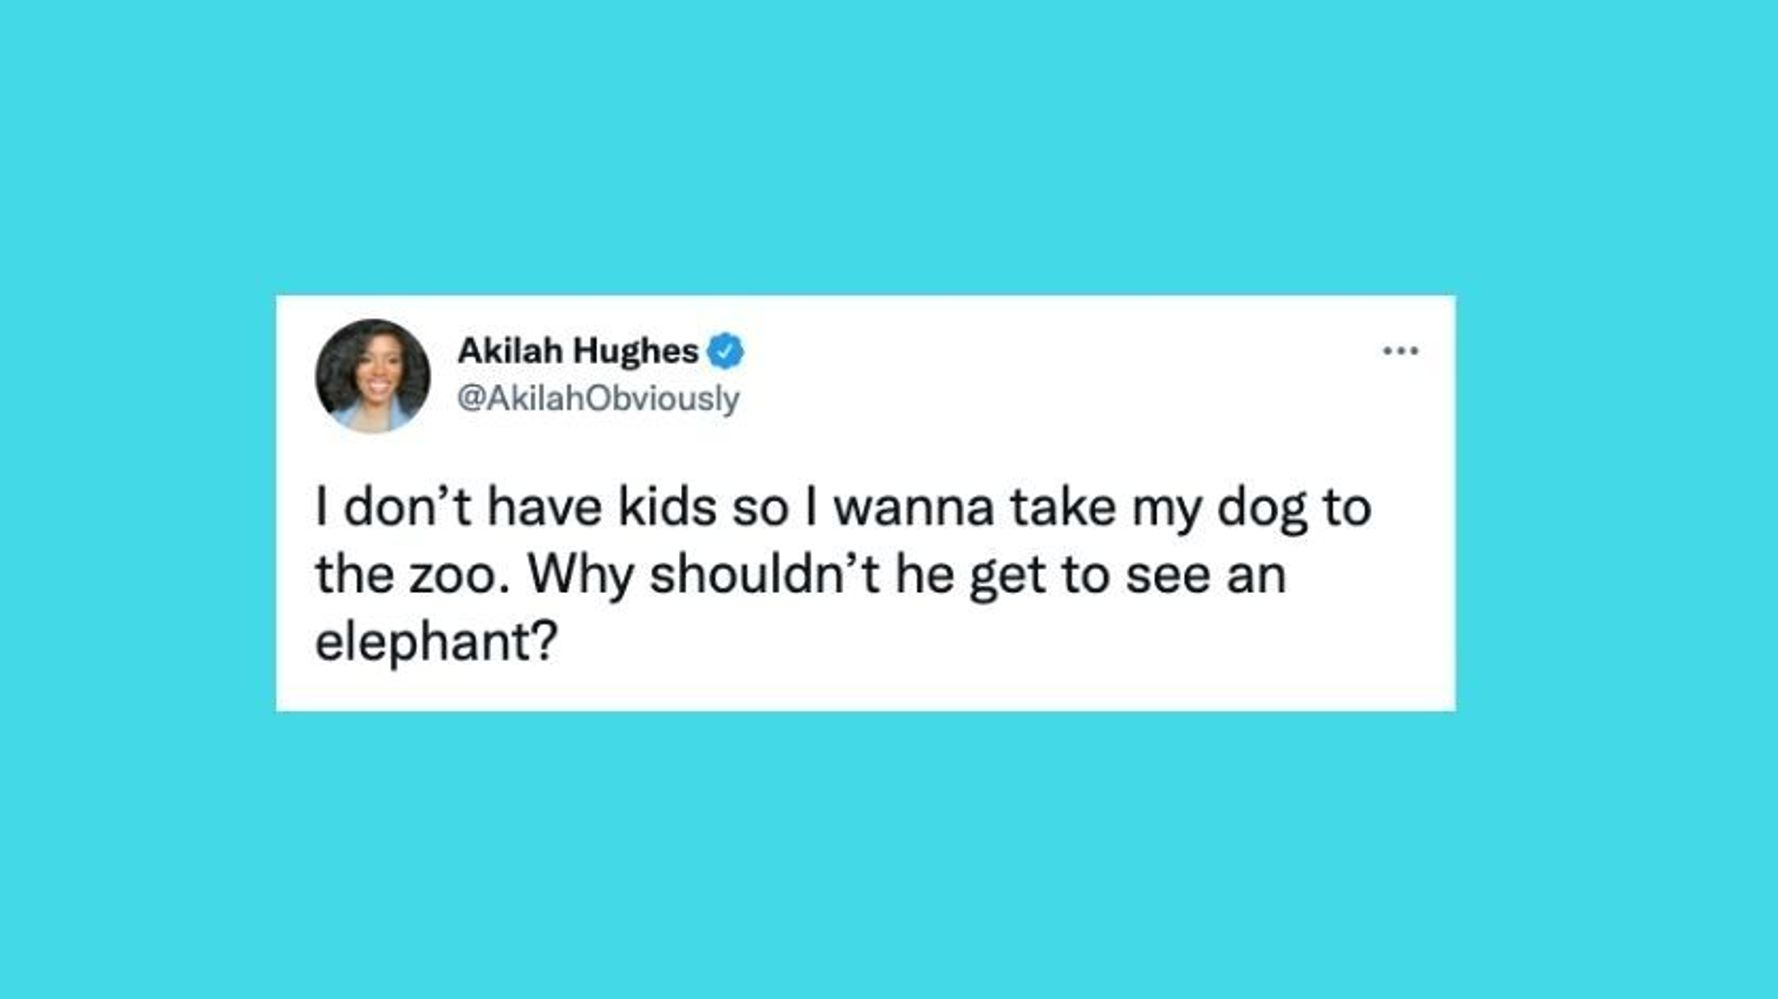 26 Of The Funniest Tweets About Cats And Dogs This Week (Oct. 16-22)